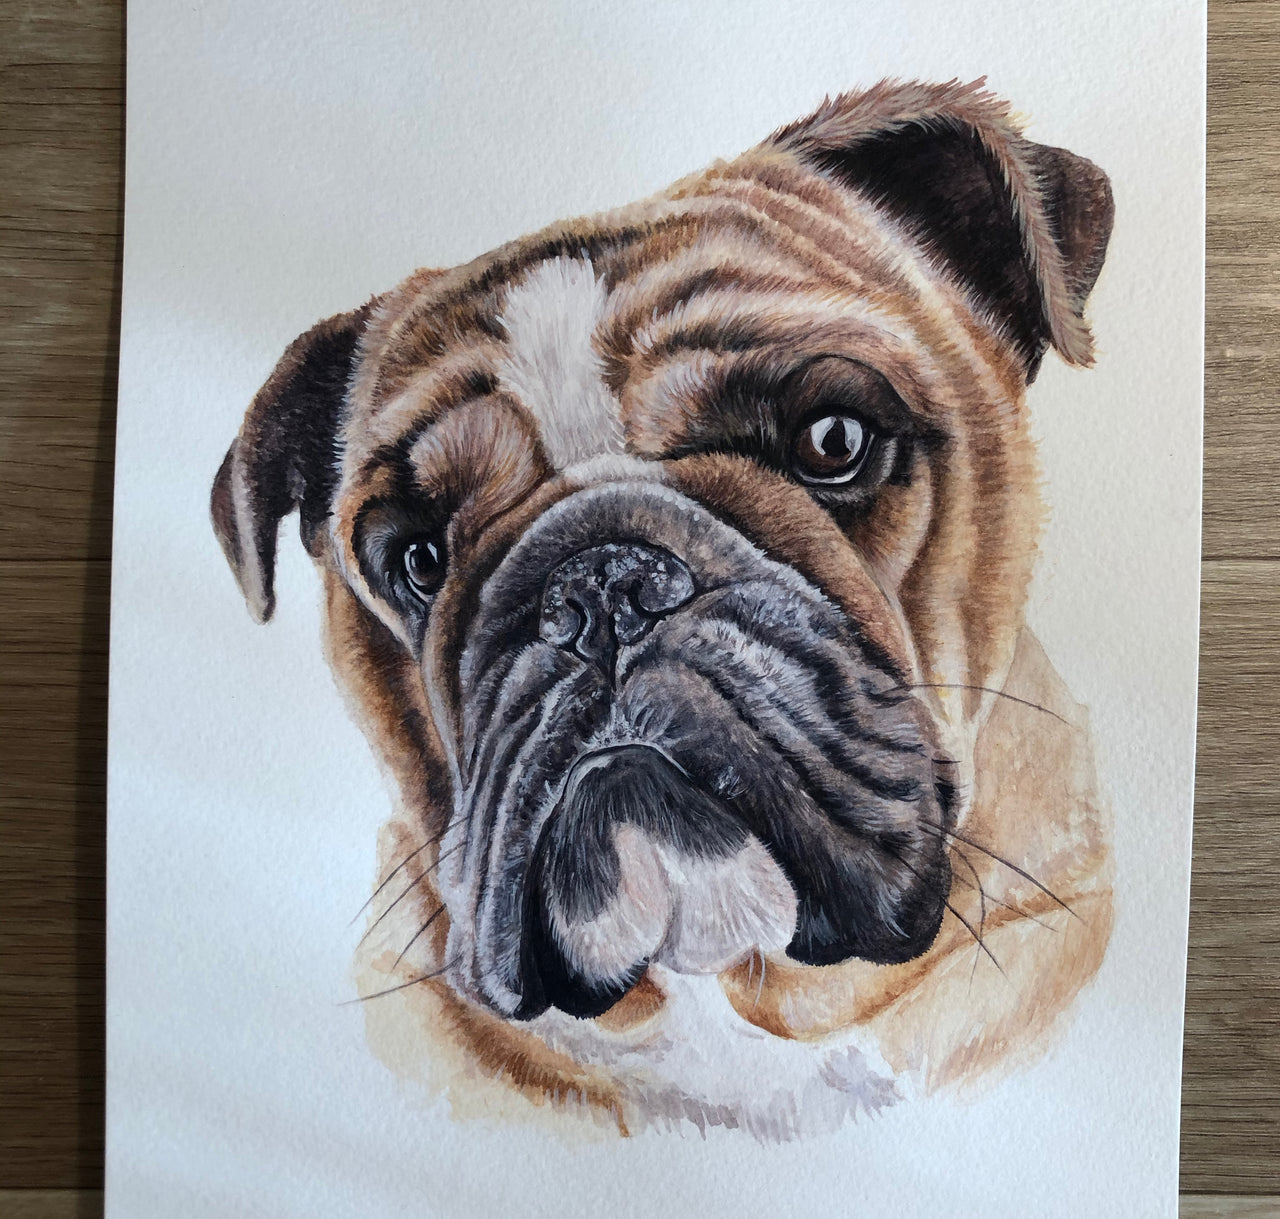 Koba the English Bulldog